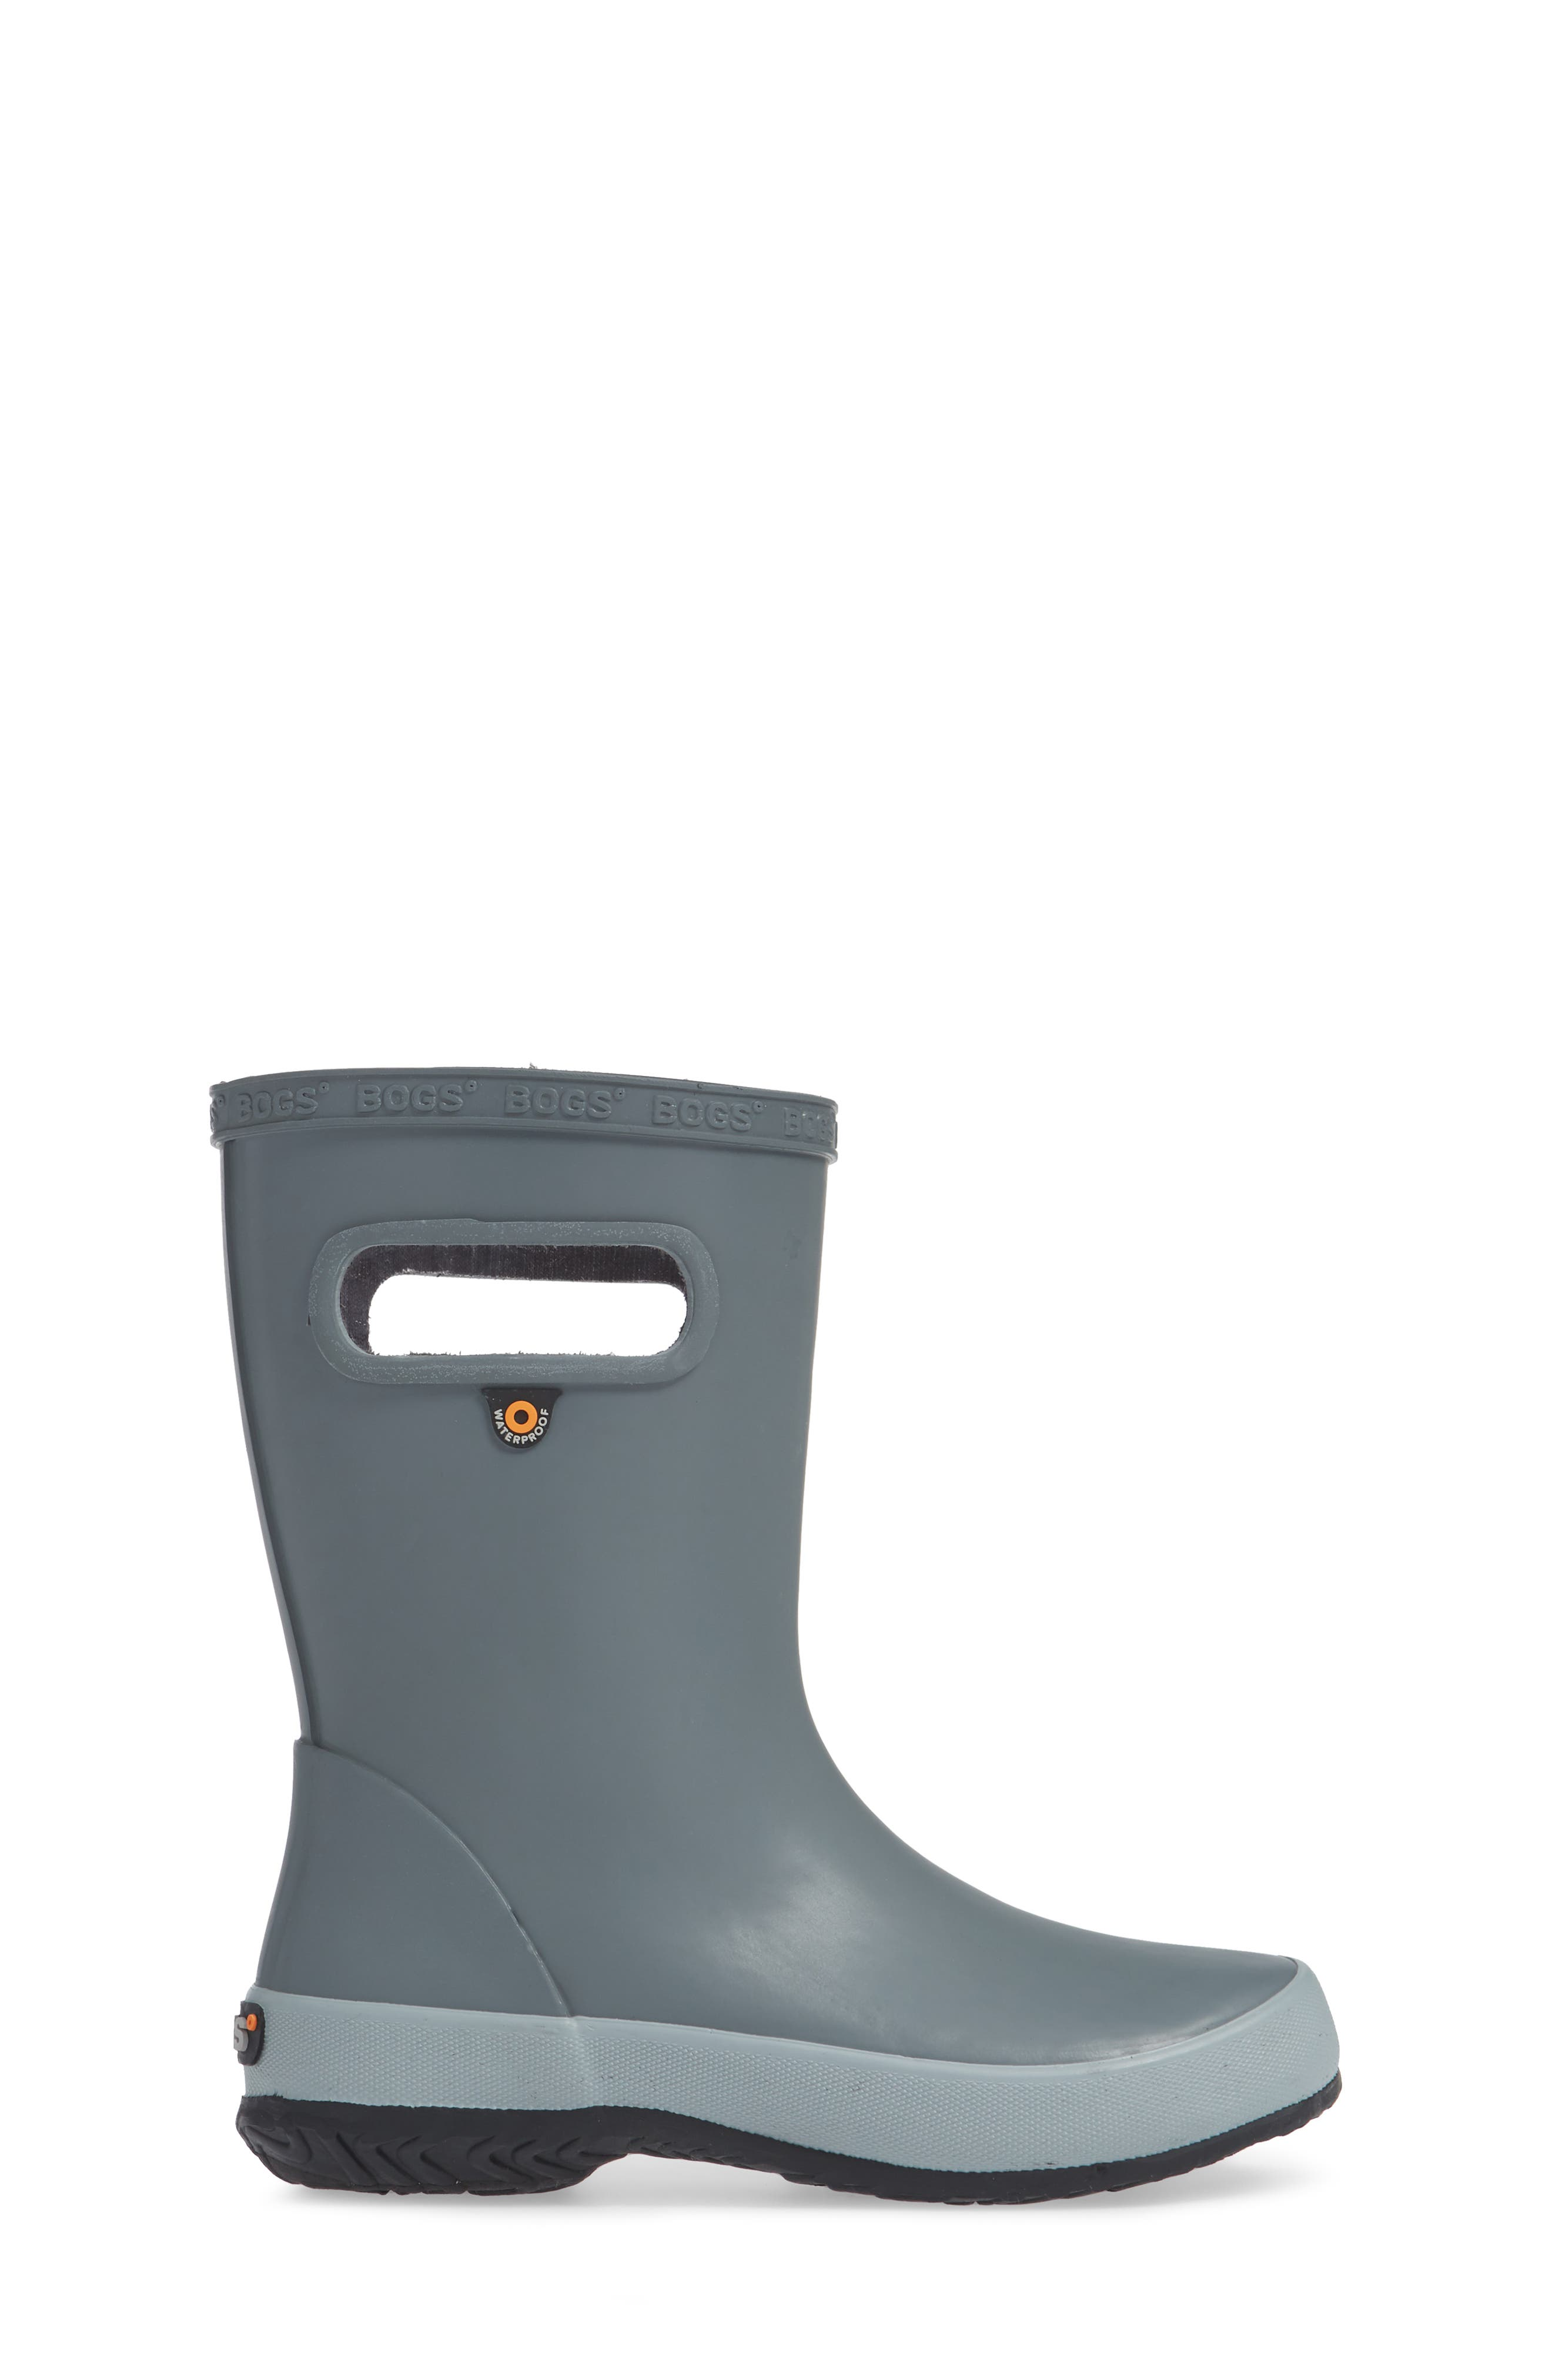 Skipper Solid Rubber Rain Boot,                             Alternate thumbnail 3, color,                             GRAY